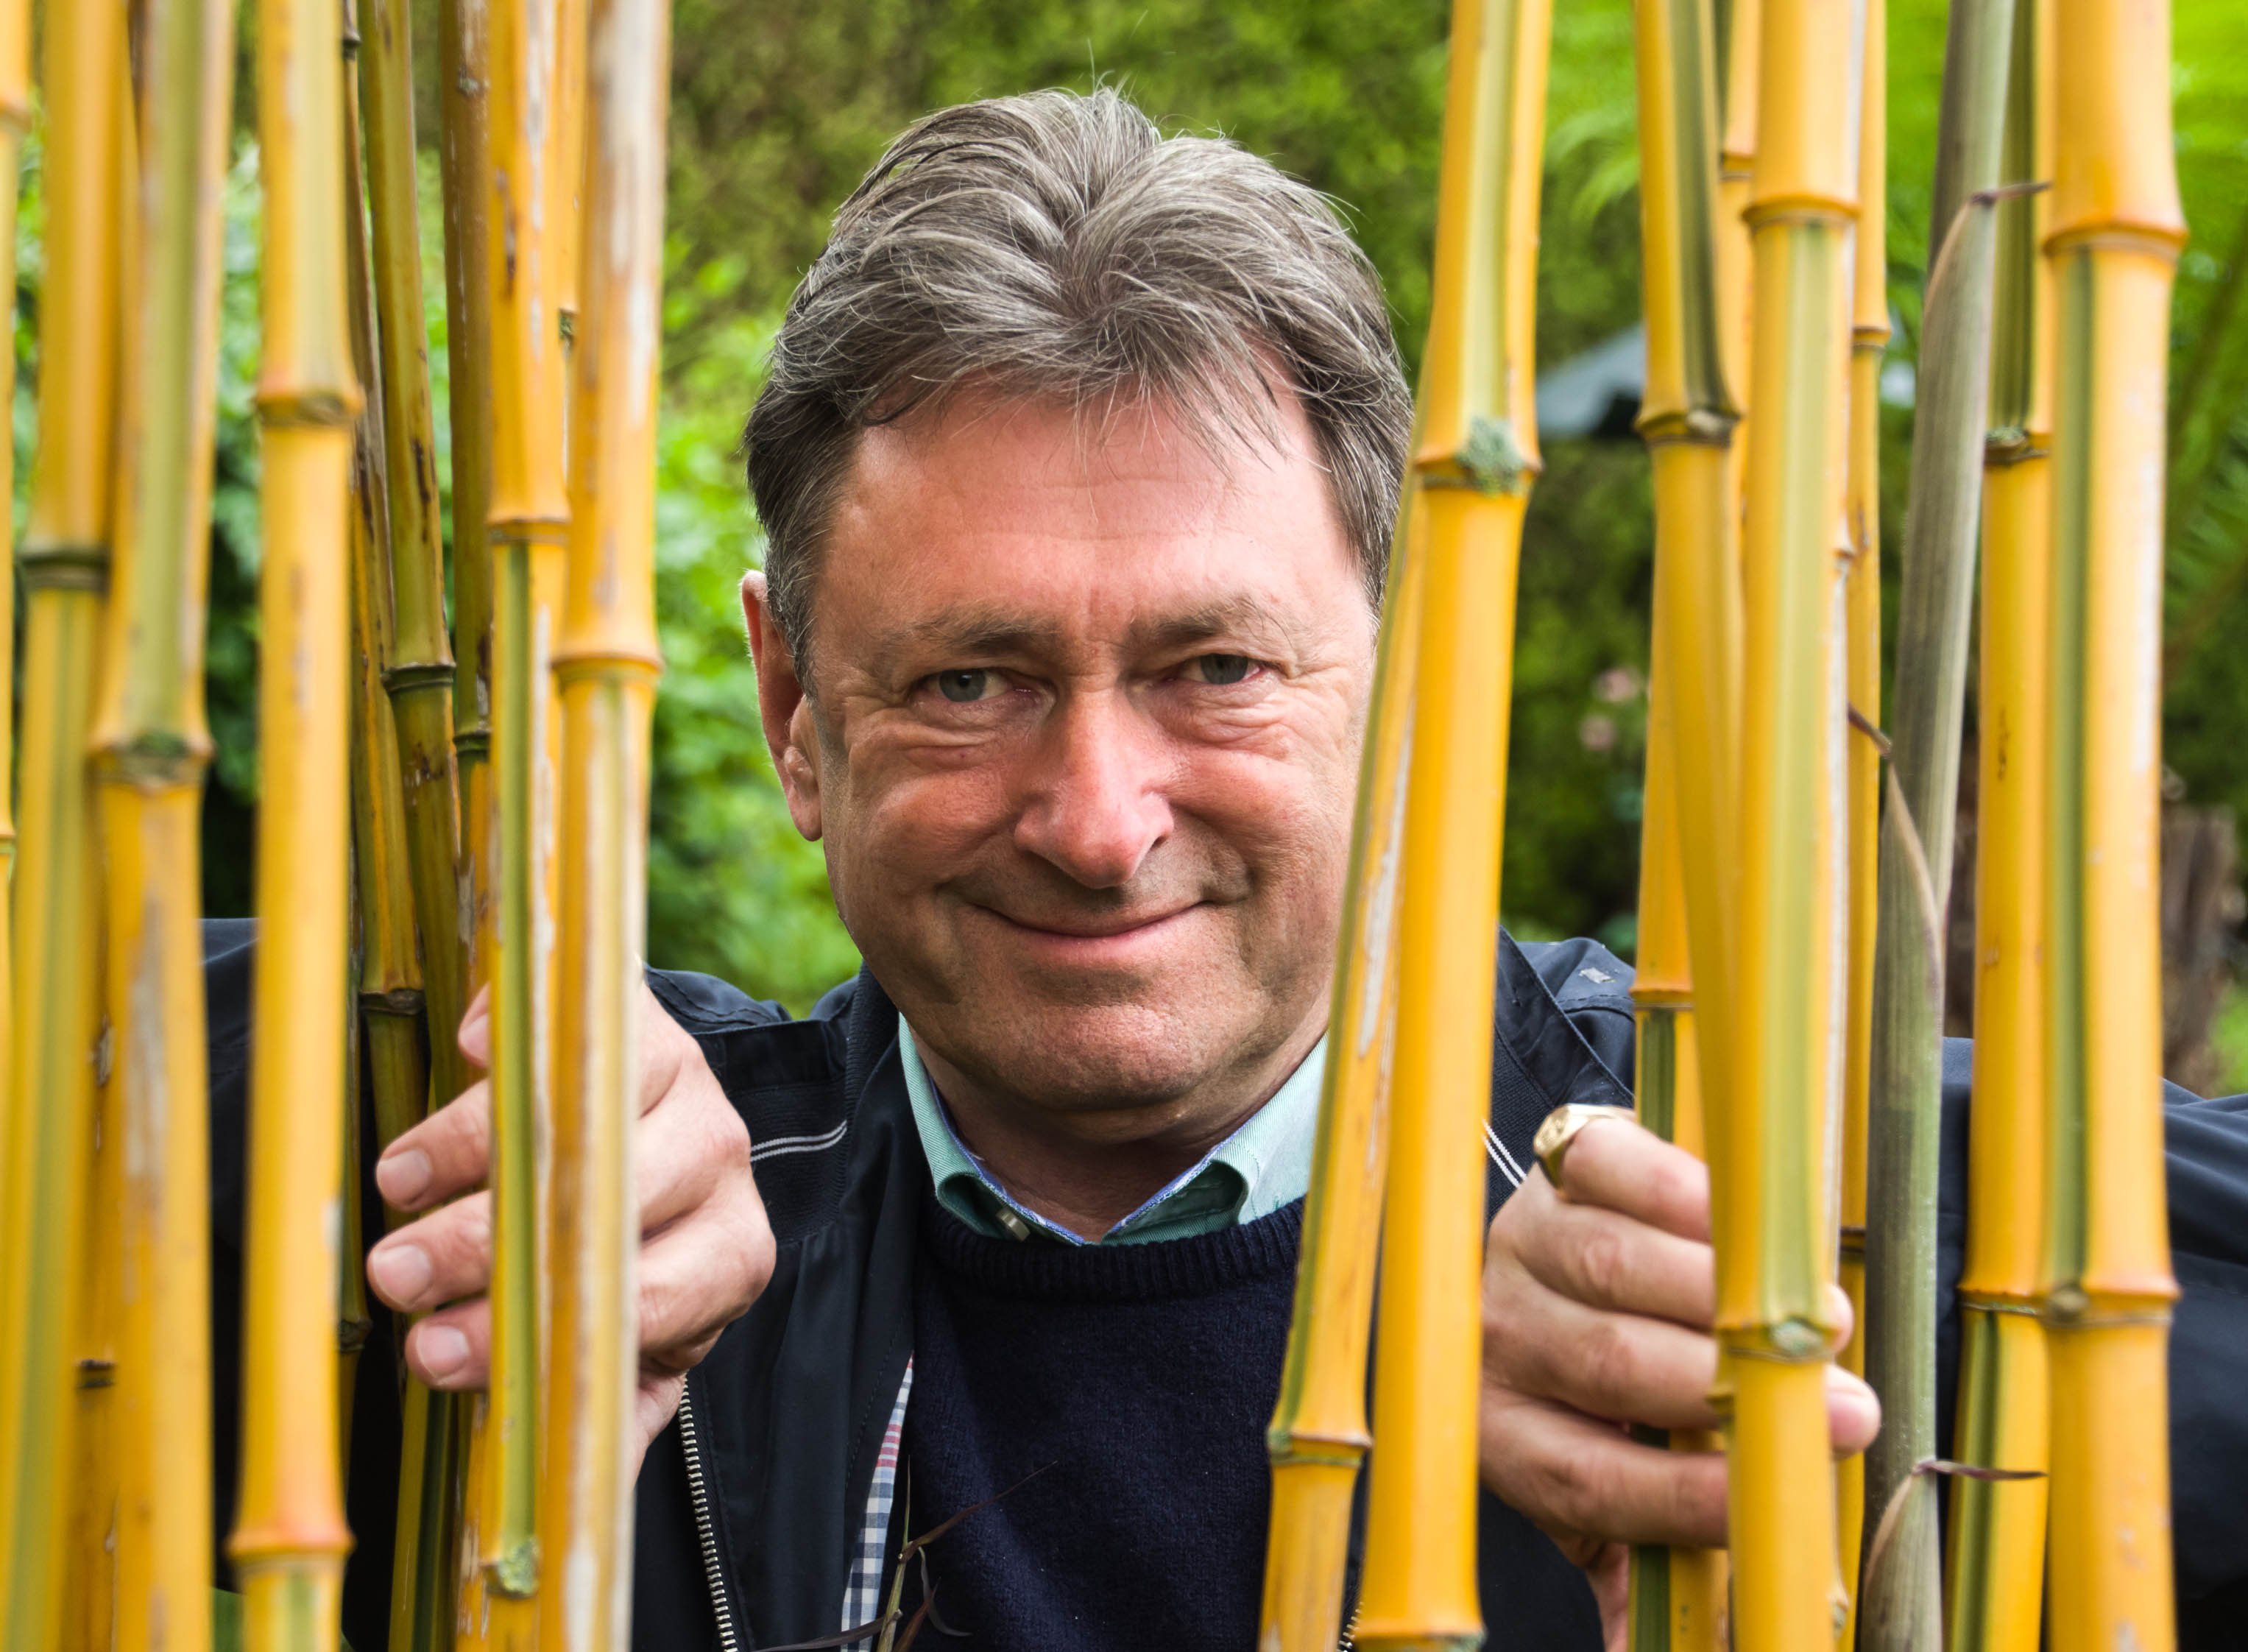 Alan Titchmarsh plans gardening version of the Great British Bake Off